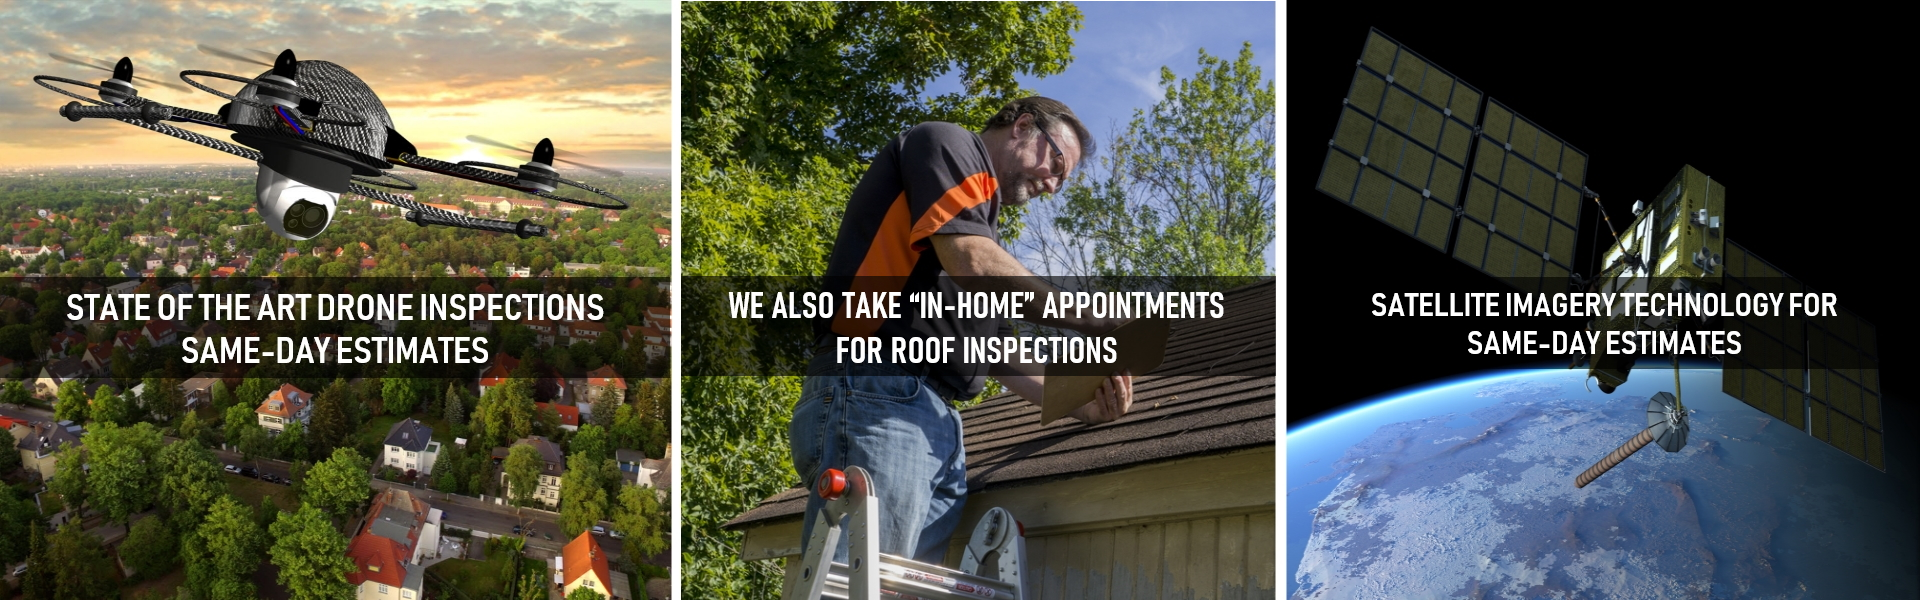 honest-roof-inspection-options-home-page-banner